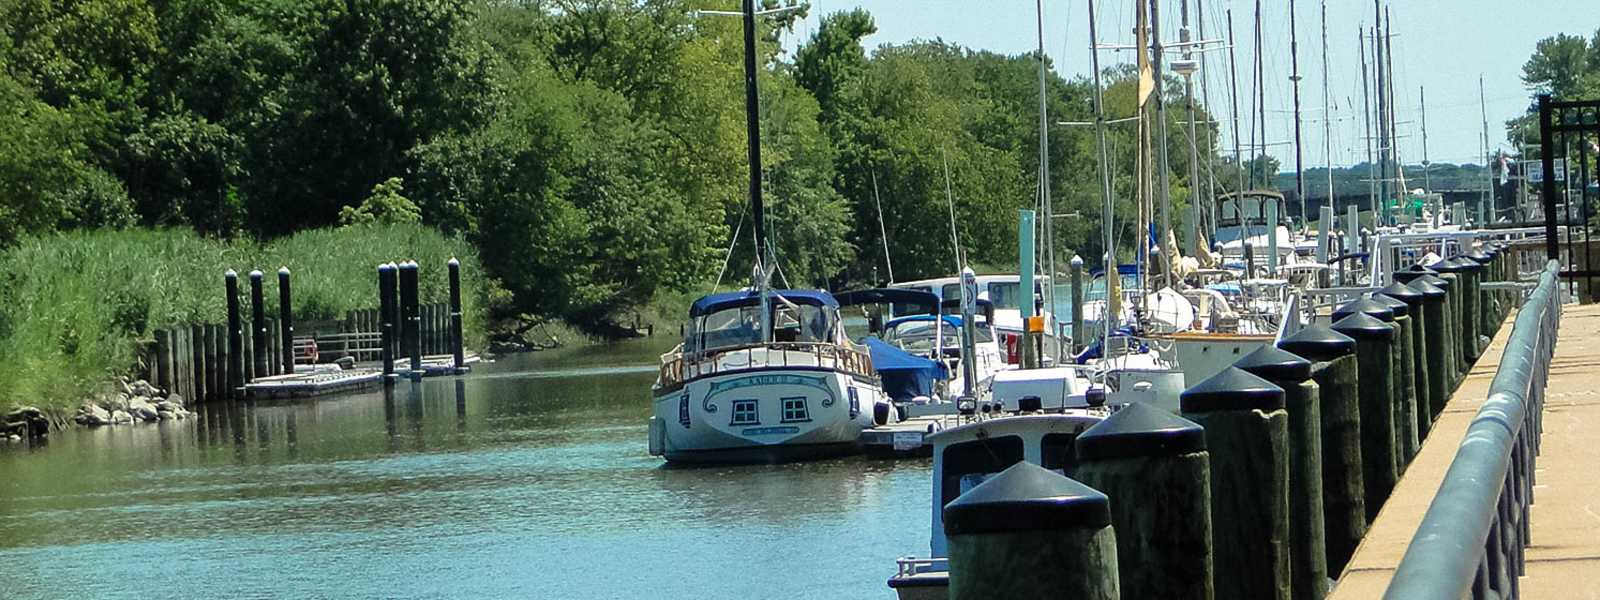 Boats on the canal in Delaware City